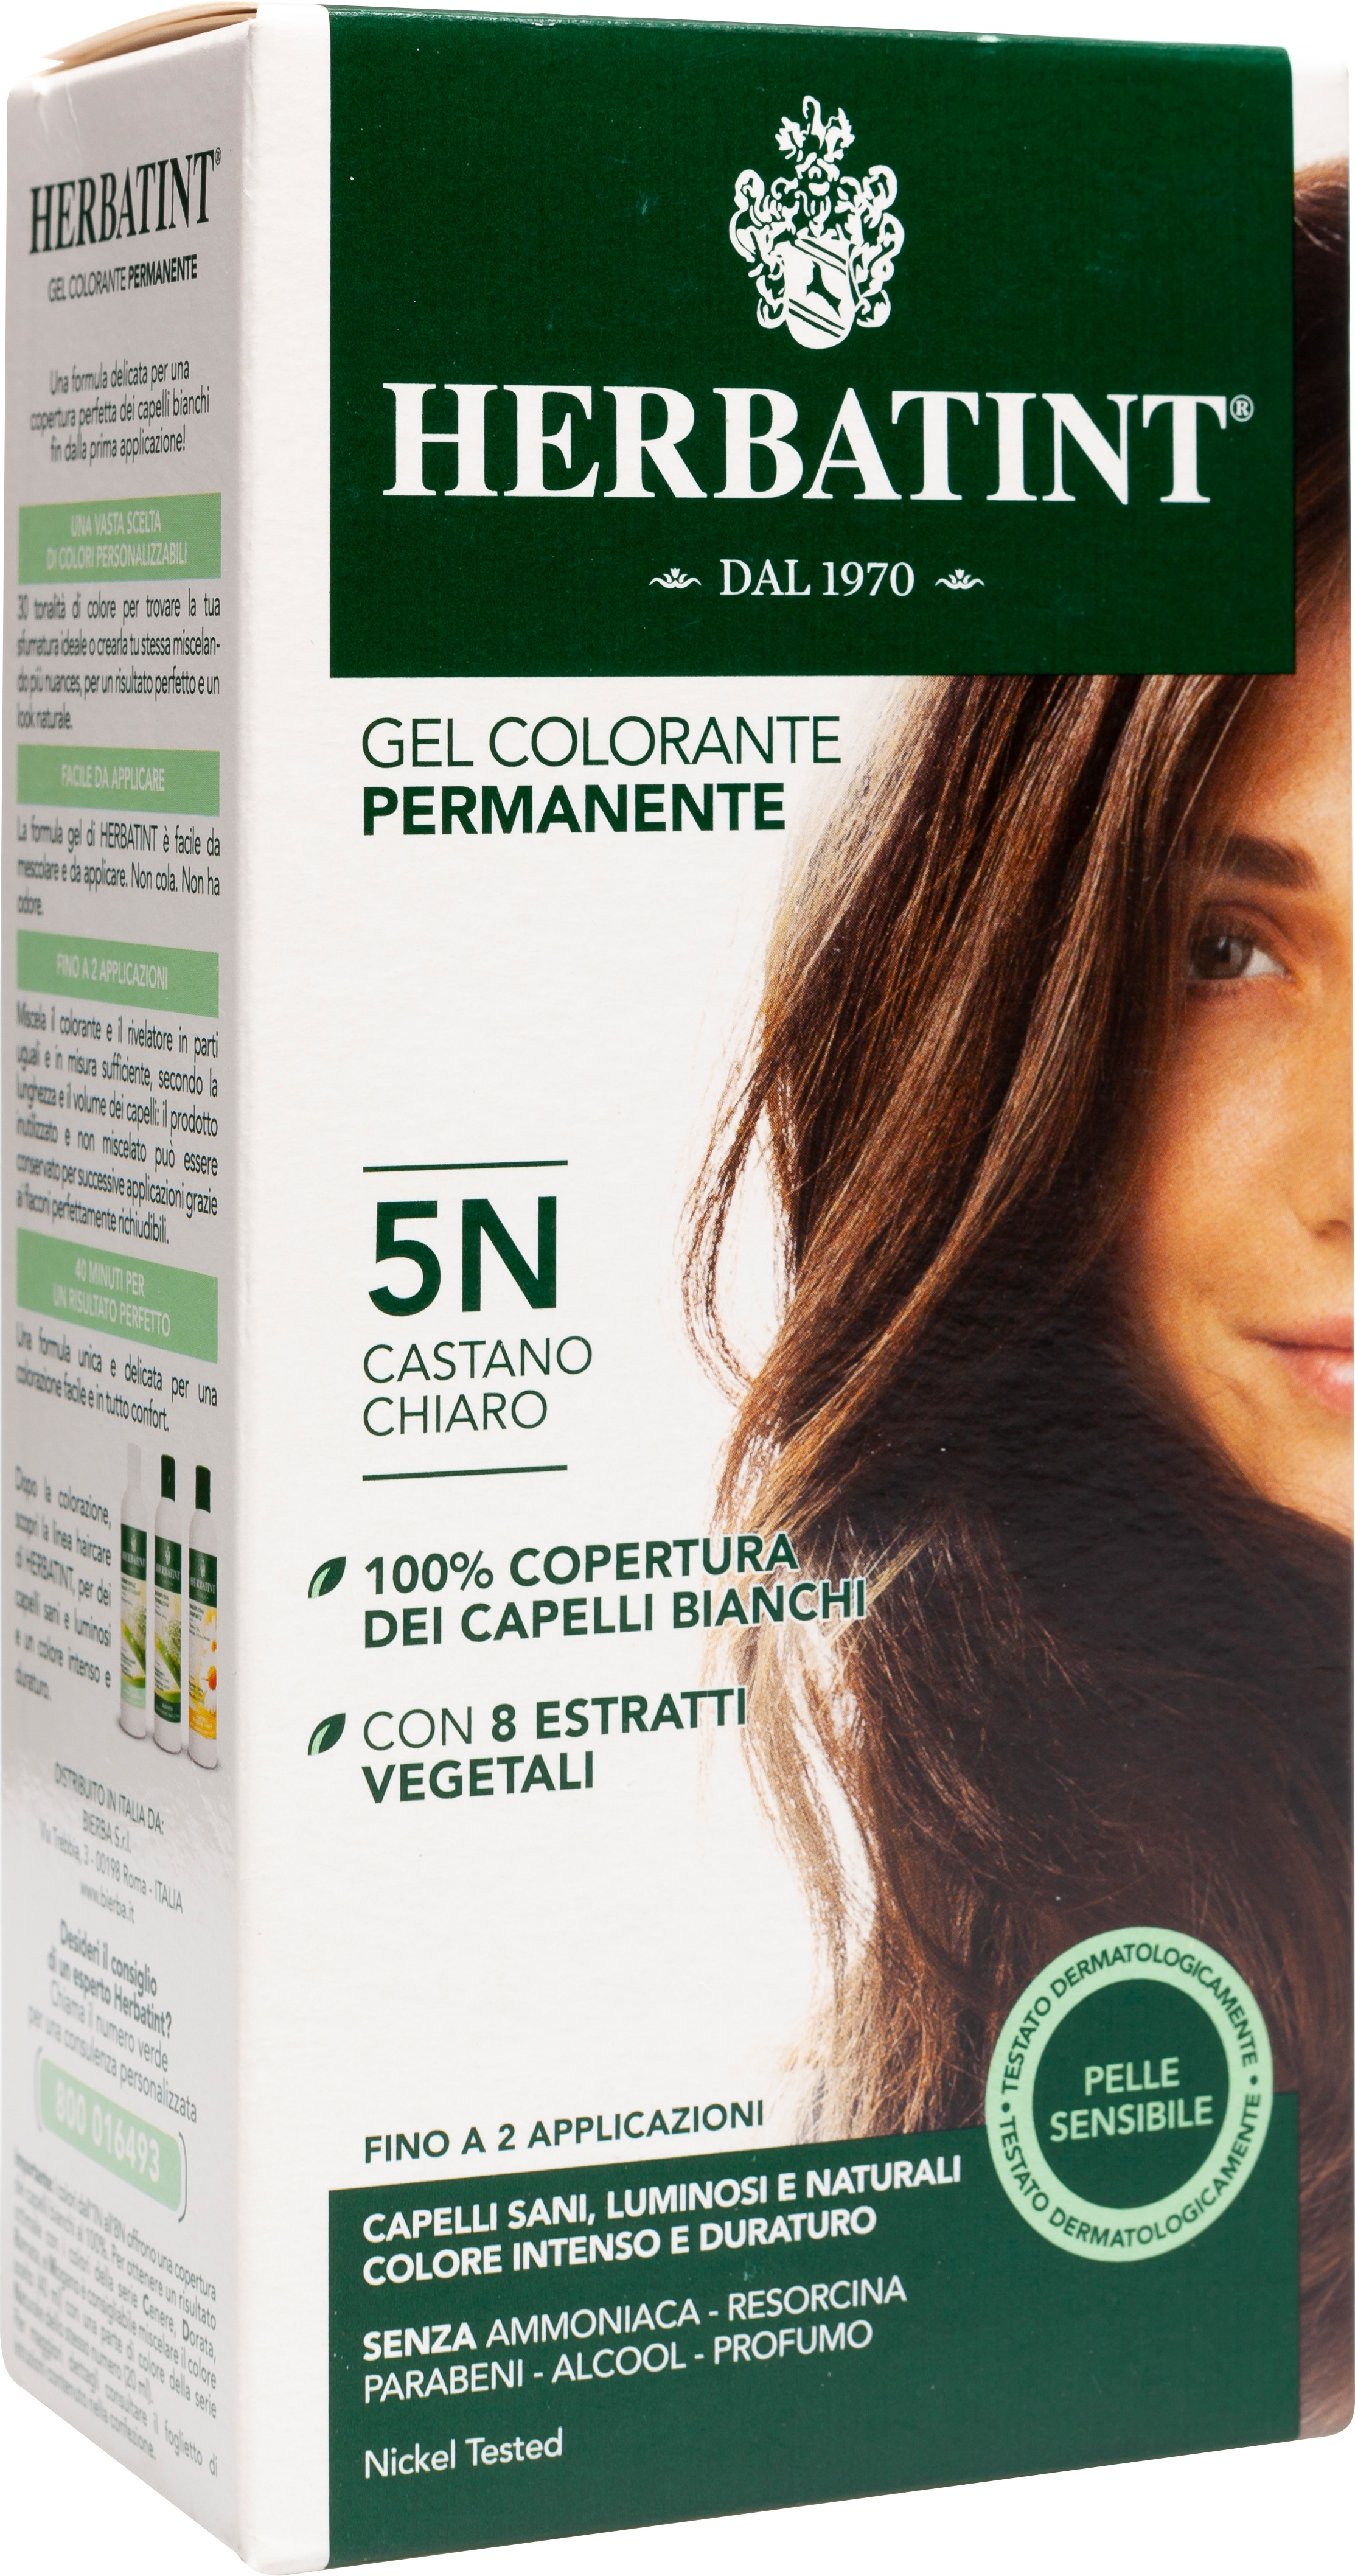 Gel colorante permanente 5N castano chiaro